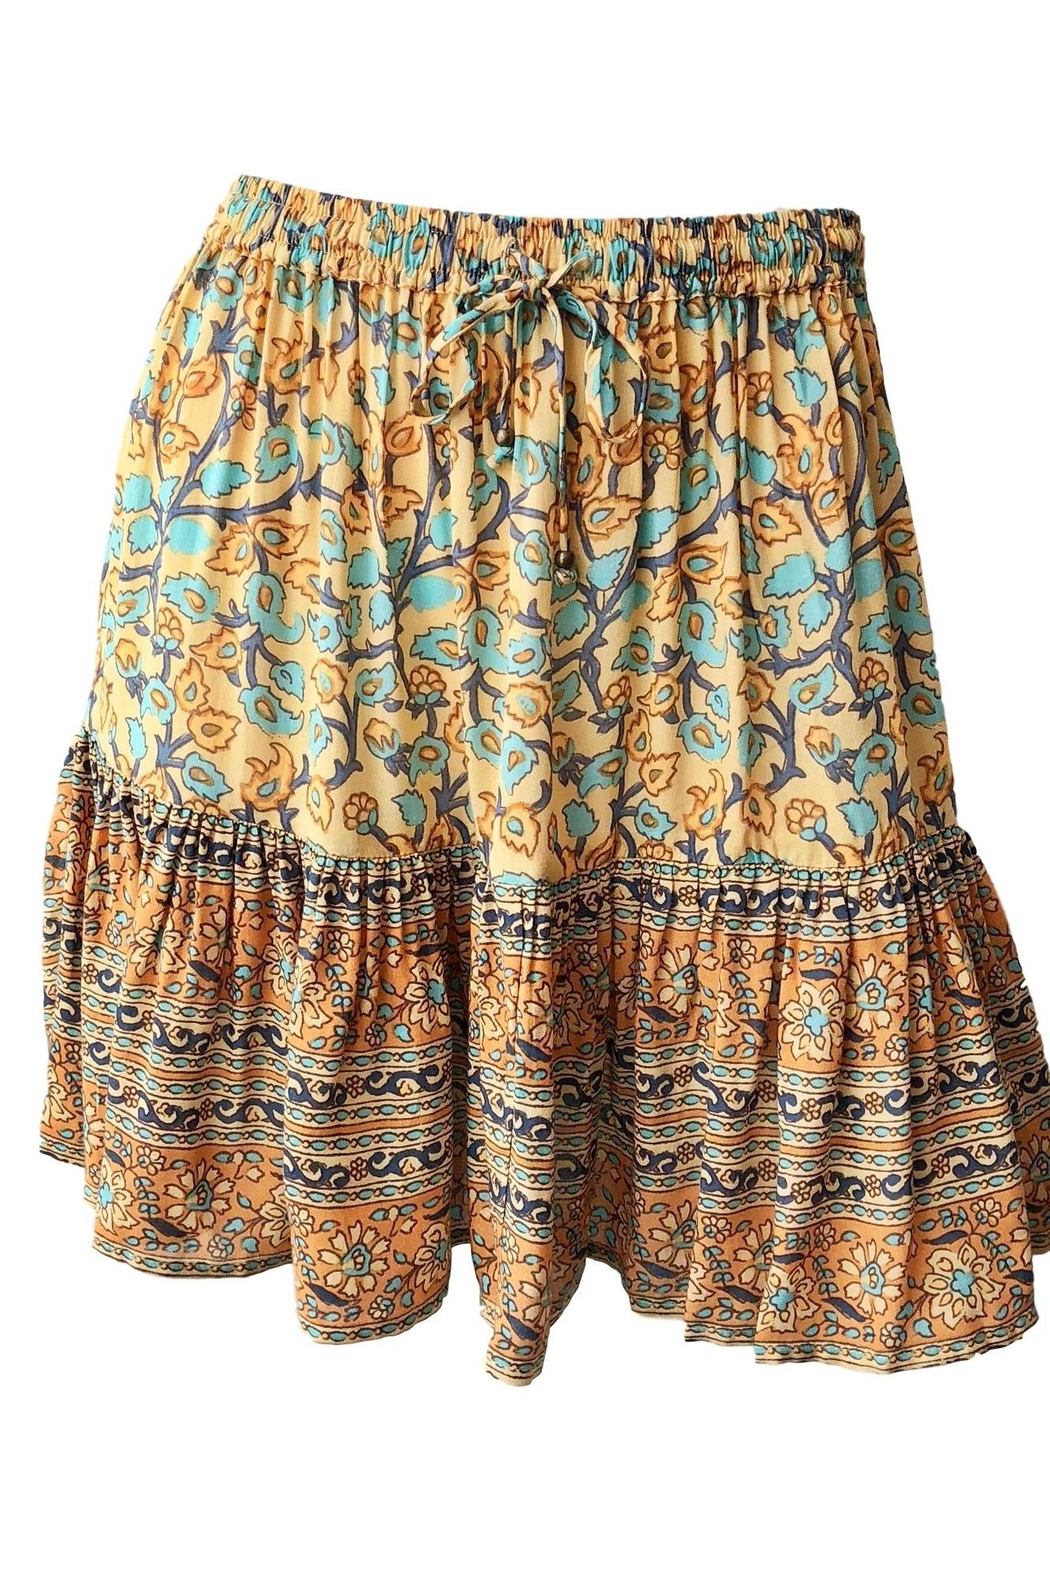 Spell & the Gypsy Collective Delirium Skirt - Main Image